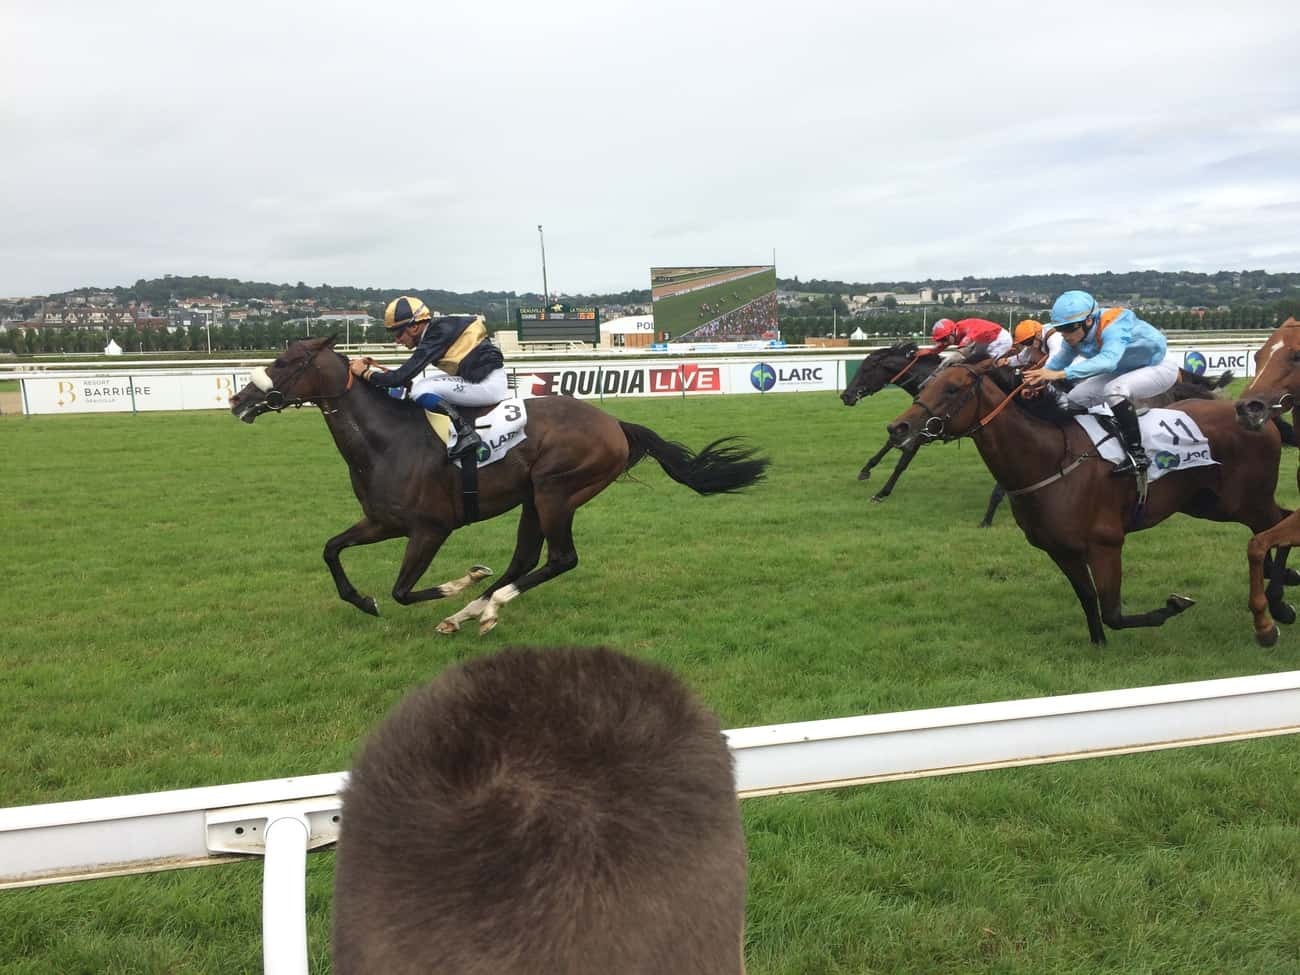 Deauville - horse racing 2